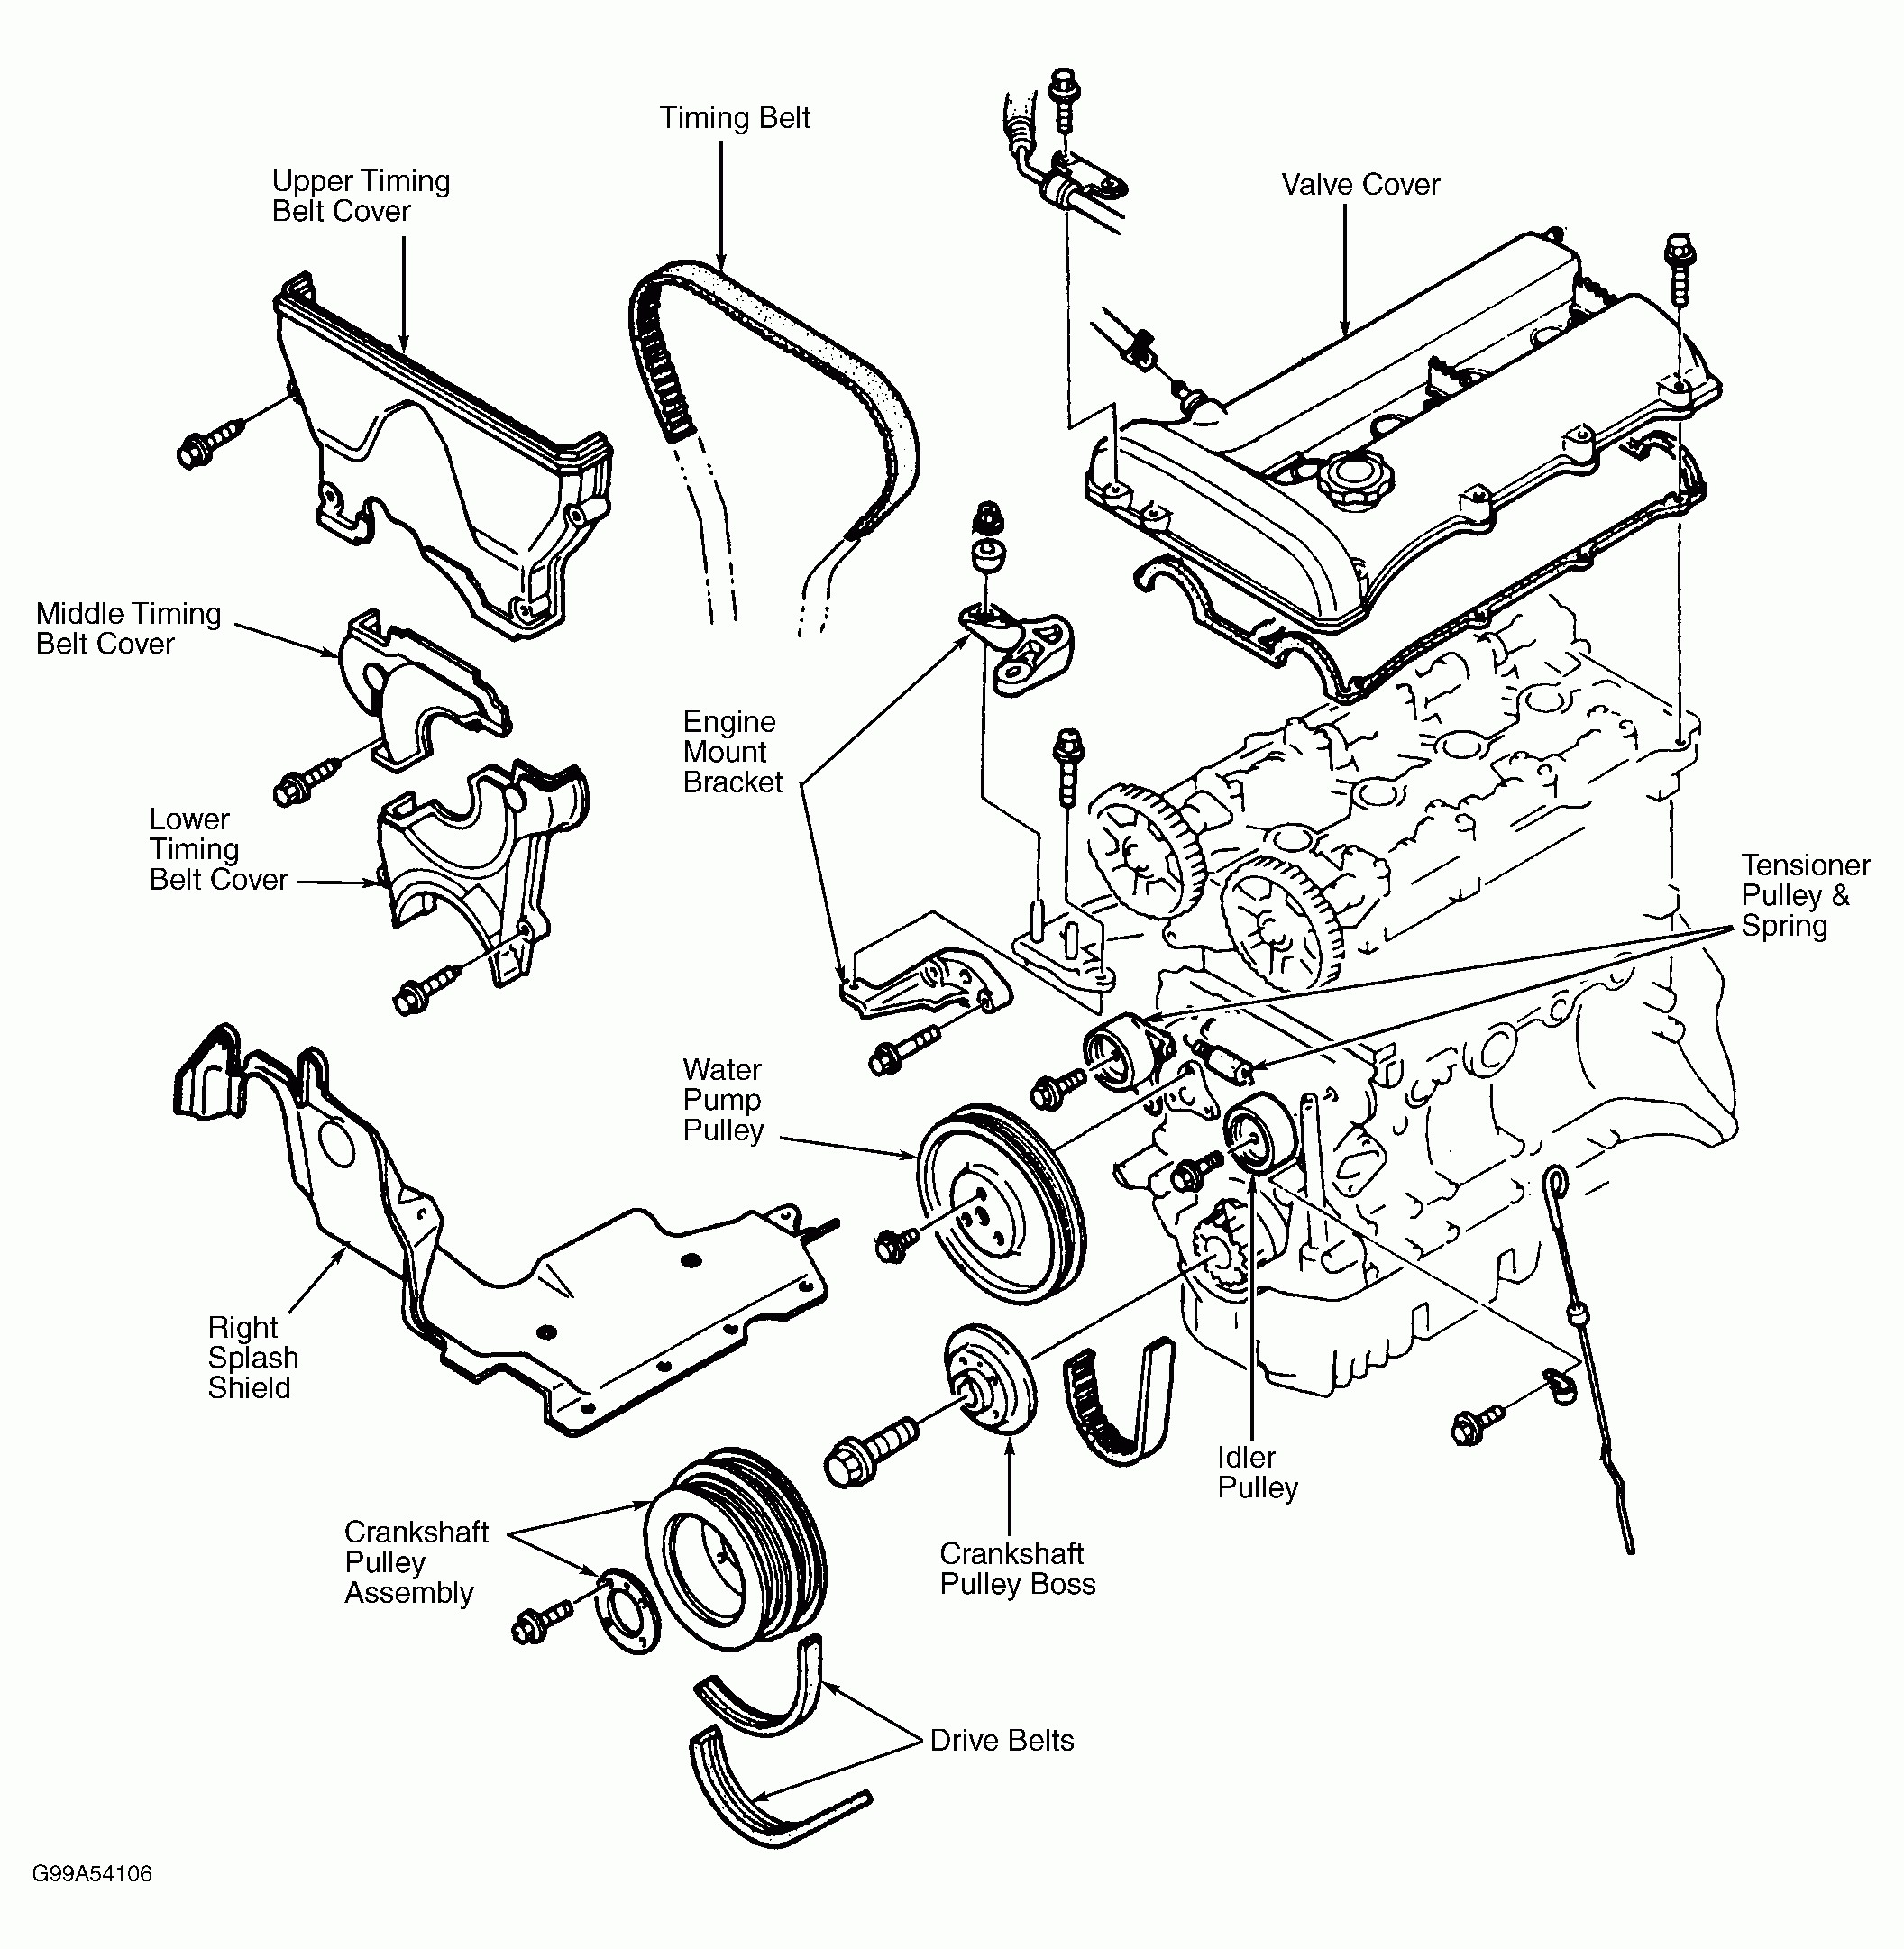 Mazda Protege 1 6 Engine Diagram | Wiring Library